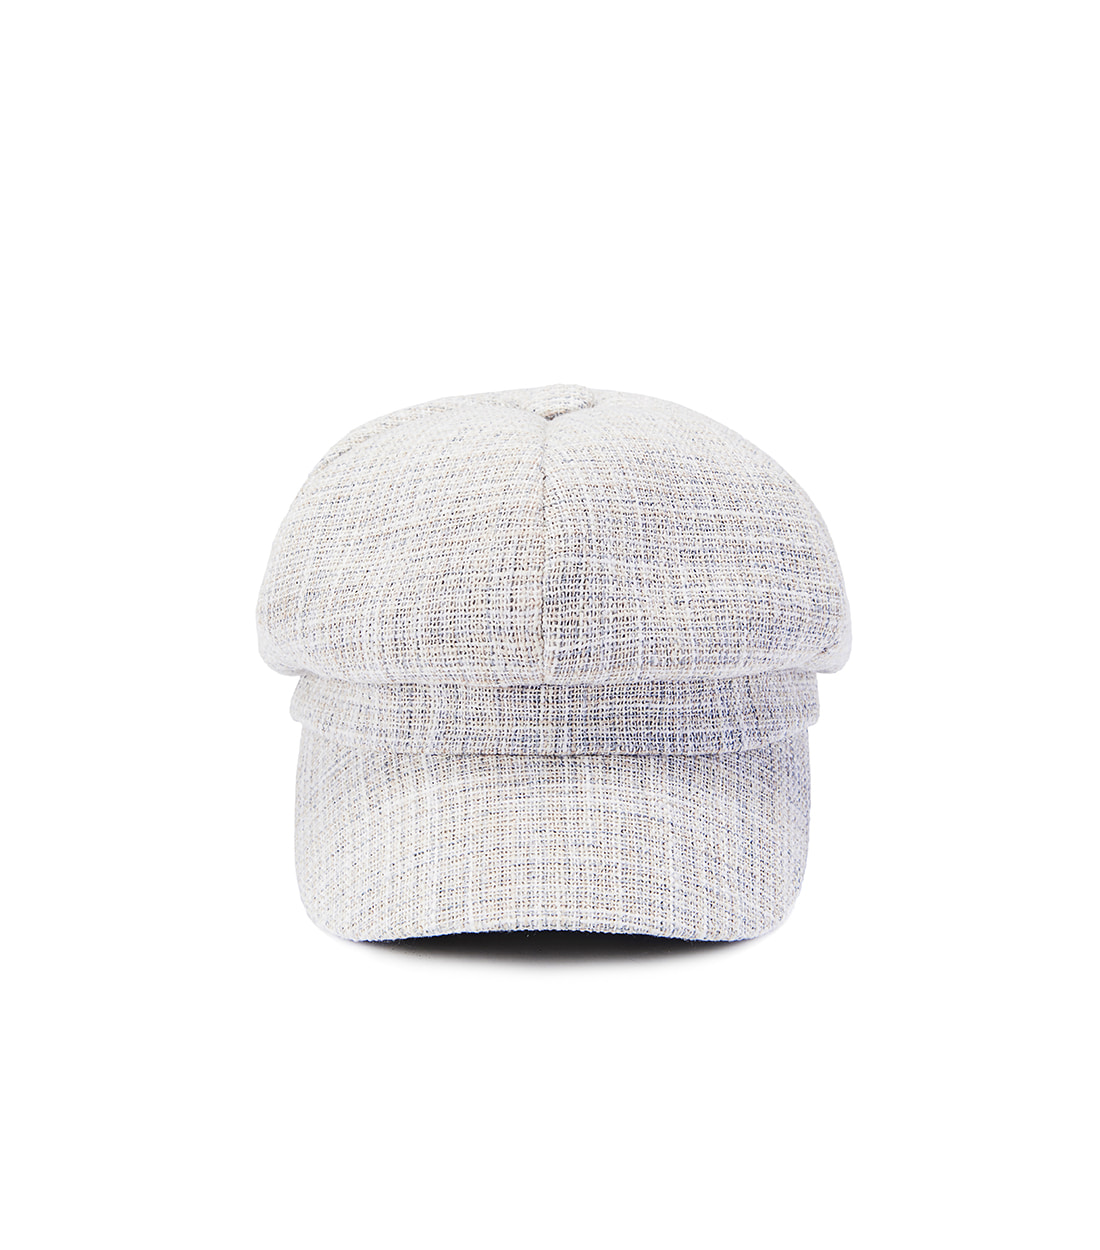 boni newsboy cap - mix light blue